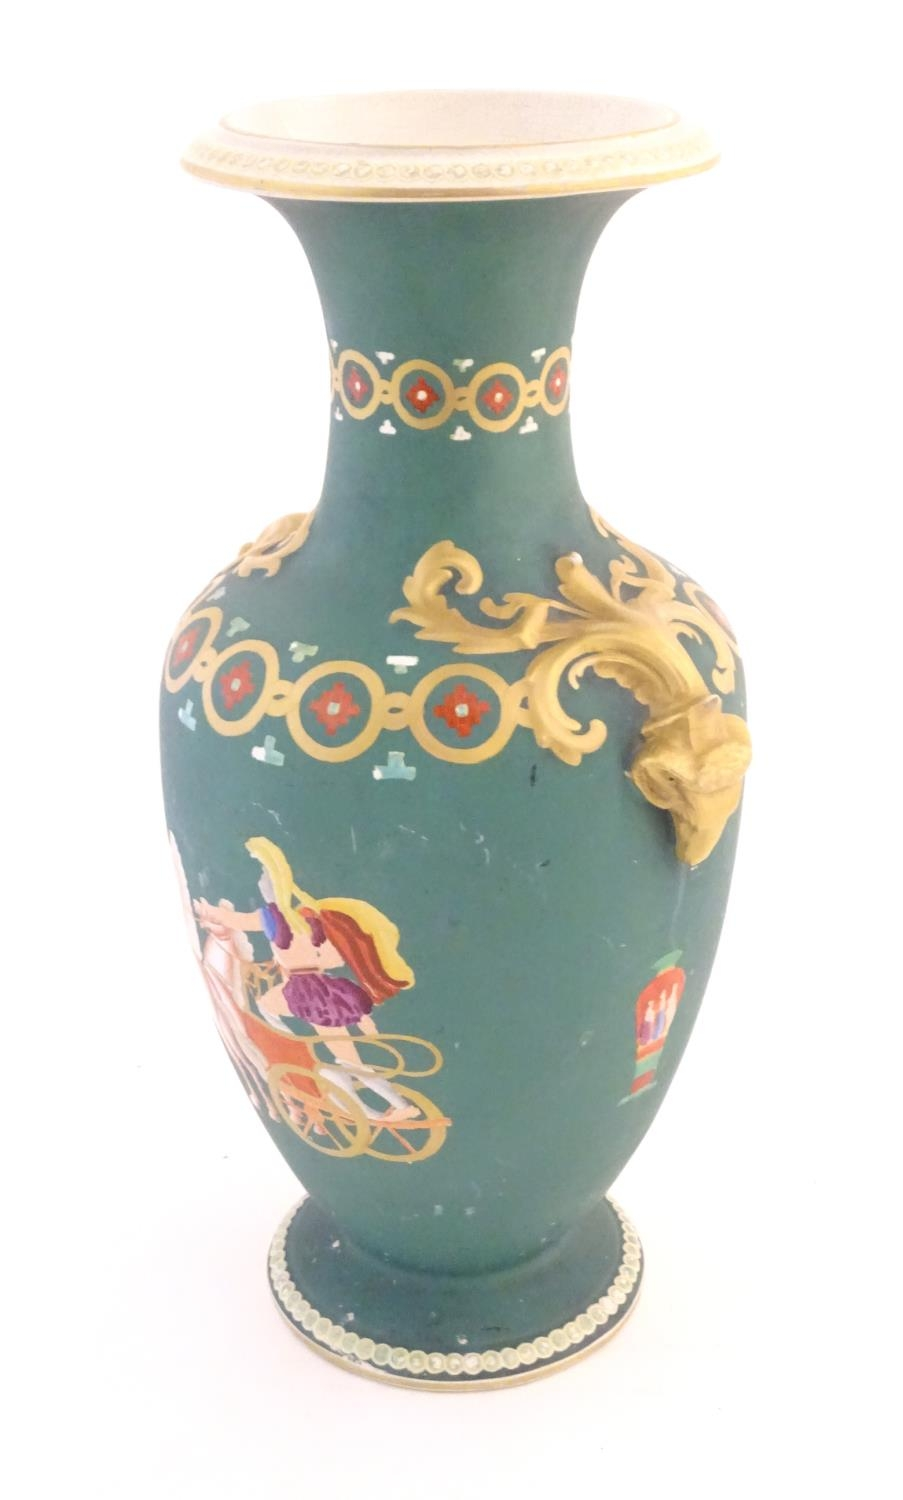 A Prattware baluster vase with Classical decoration depicting a Roman gladiator and chariot etc. - Image 7 of 12